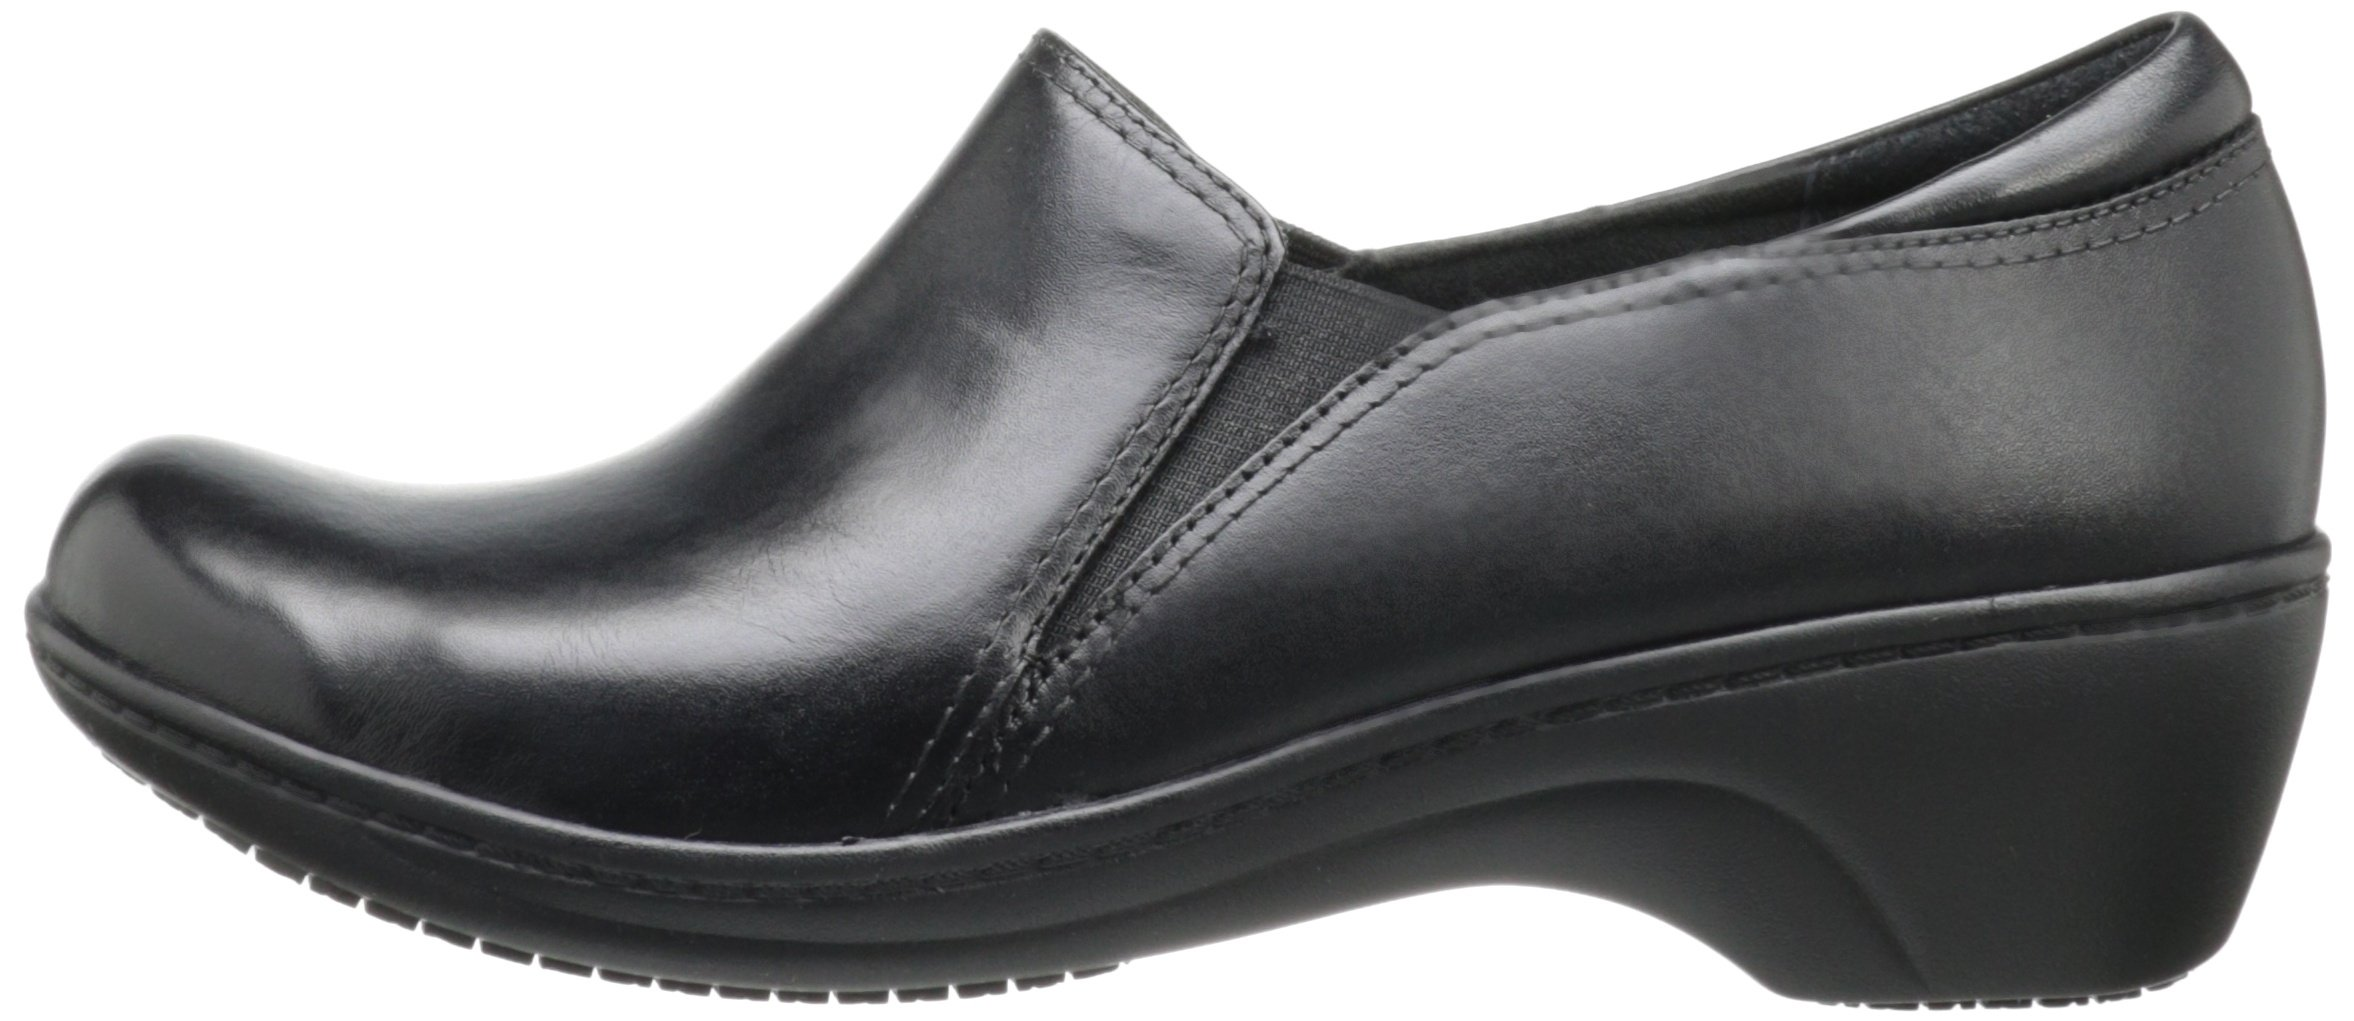 Clarks Womens Grasp Chime Loafer